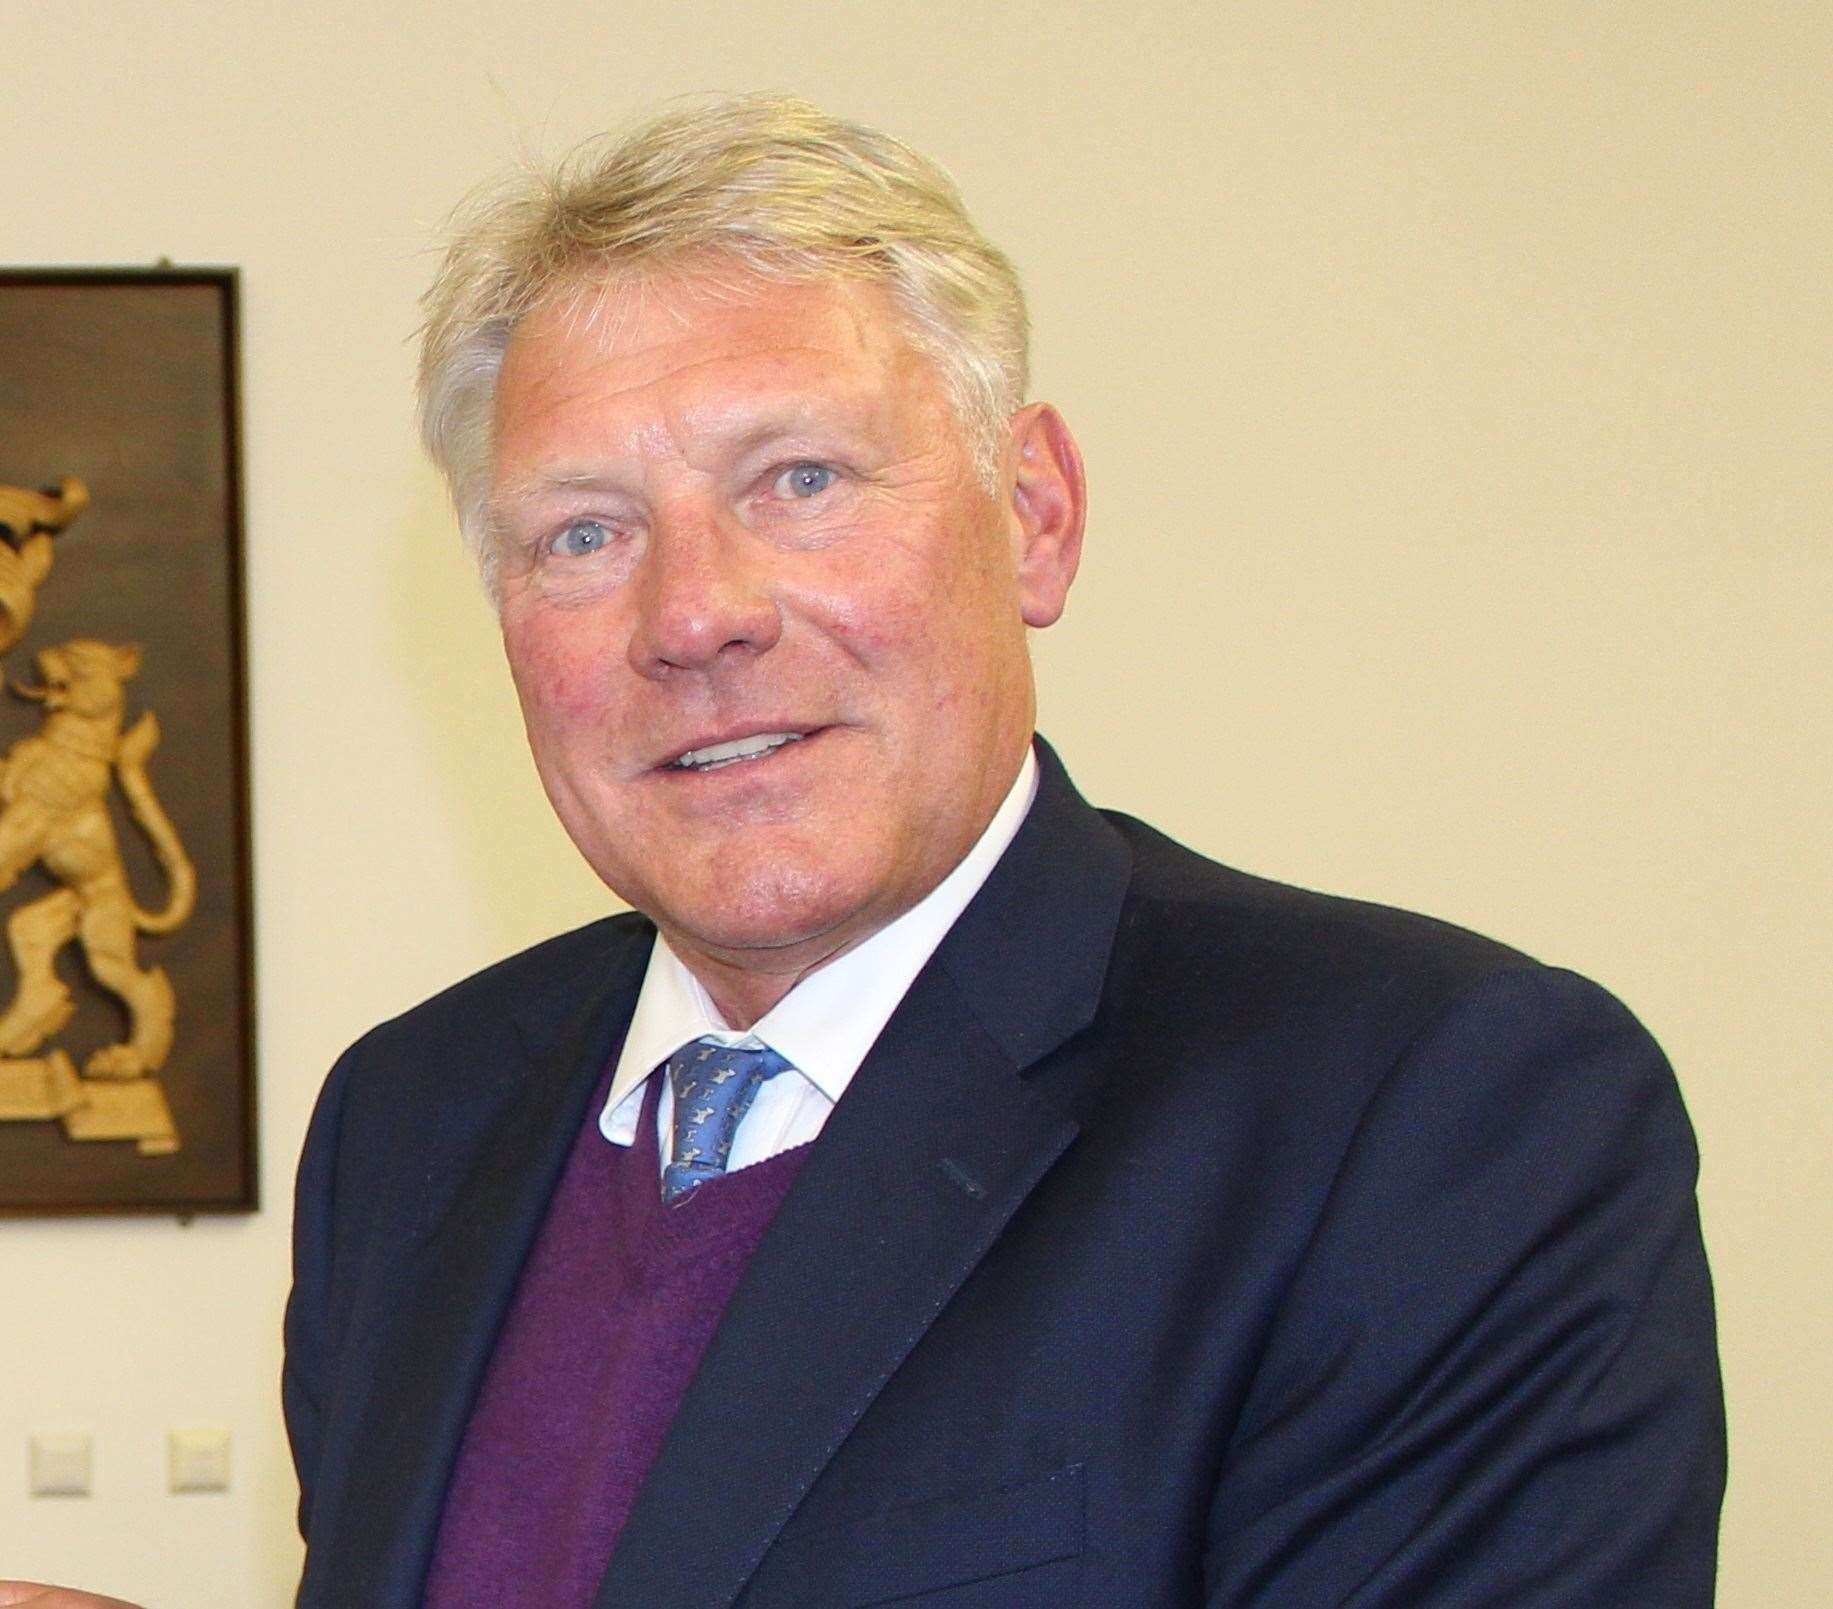 John Griffiths, leader of West Suffolk Council